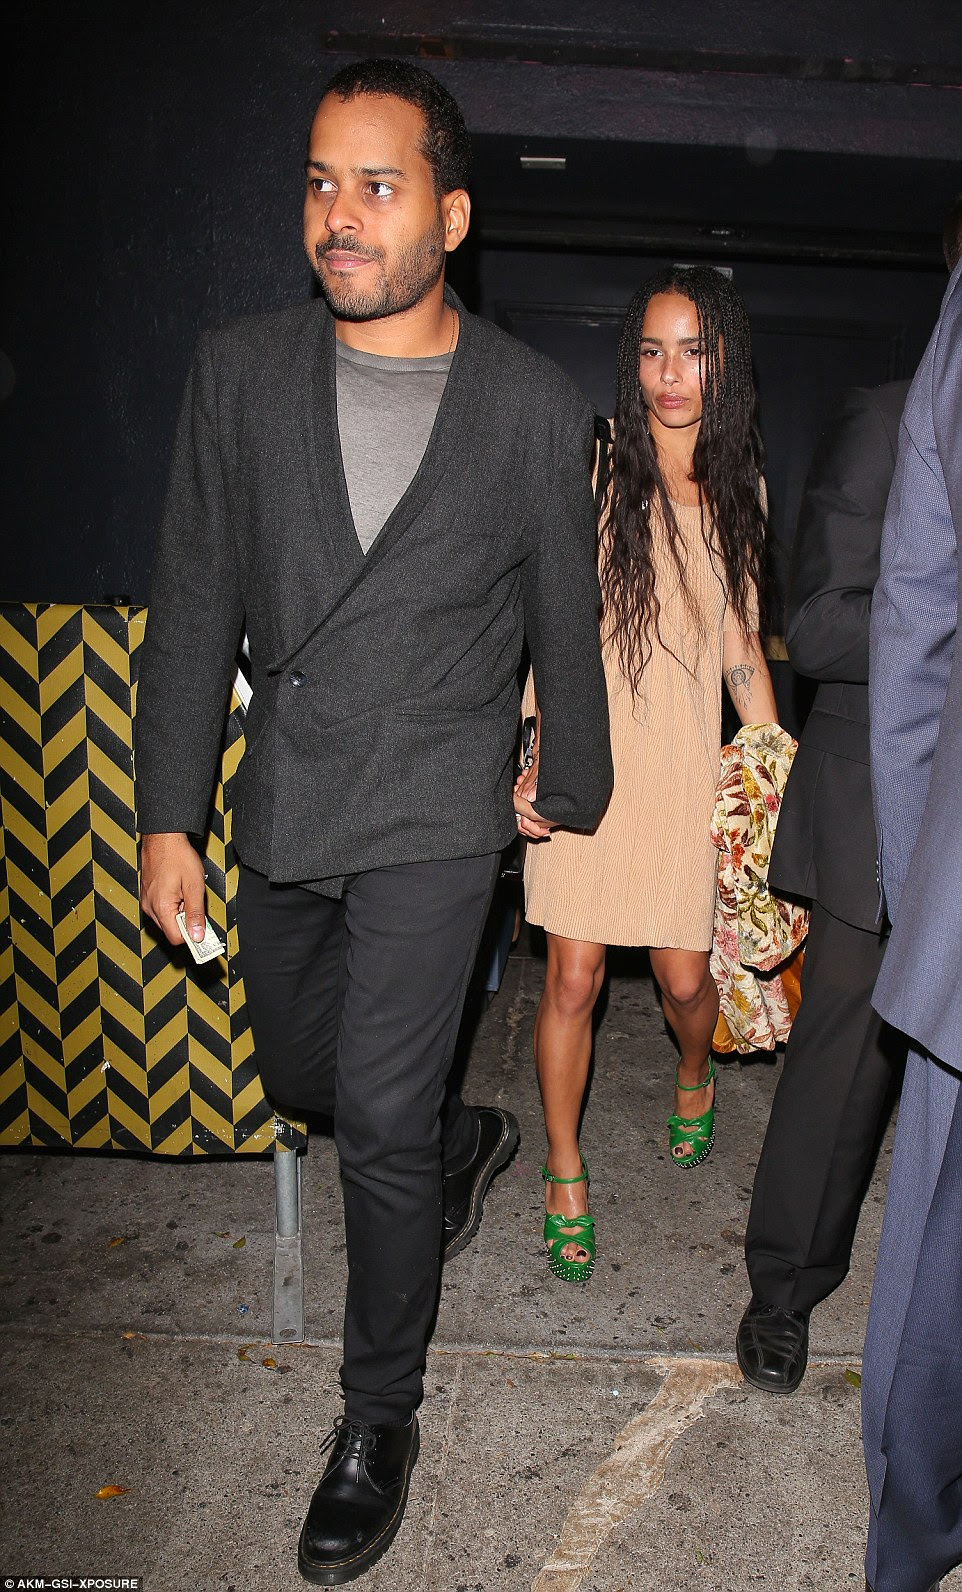 Handsome pair: The actress was joined by her boyfriend, musician Twin Shadow, who led her by the hand as they left the event